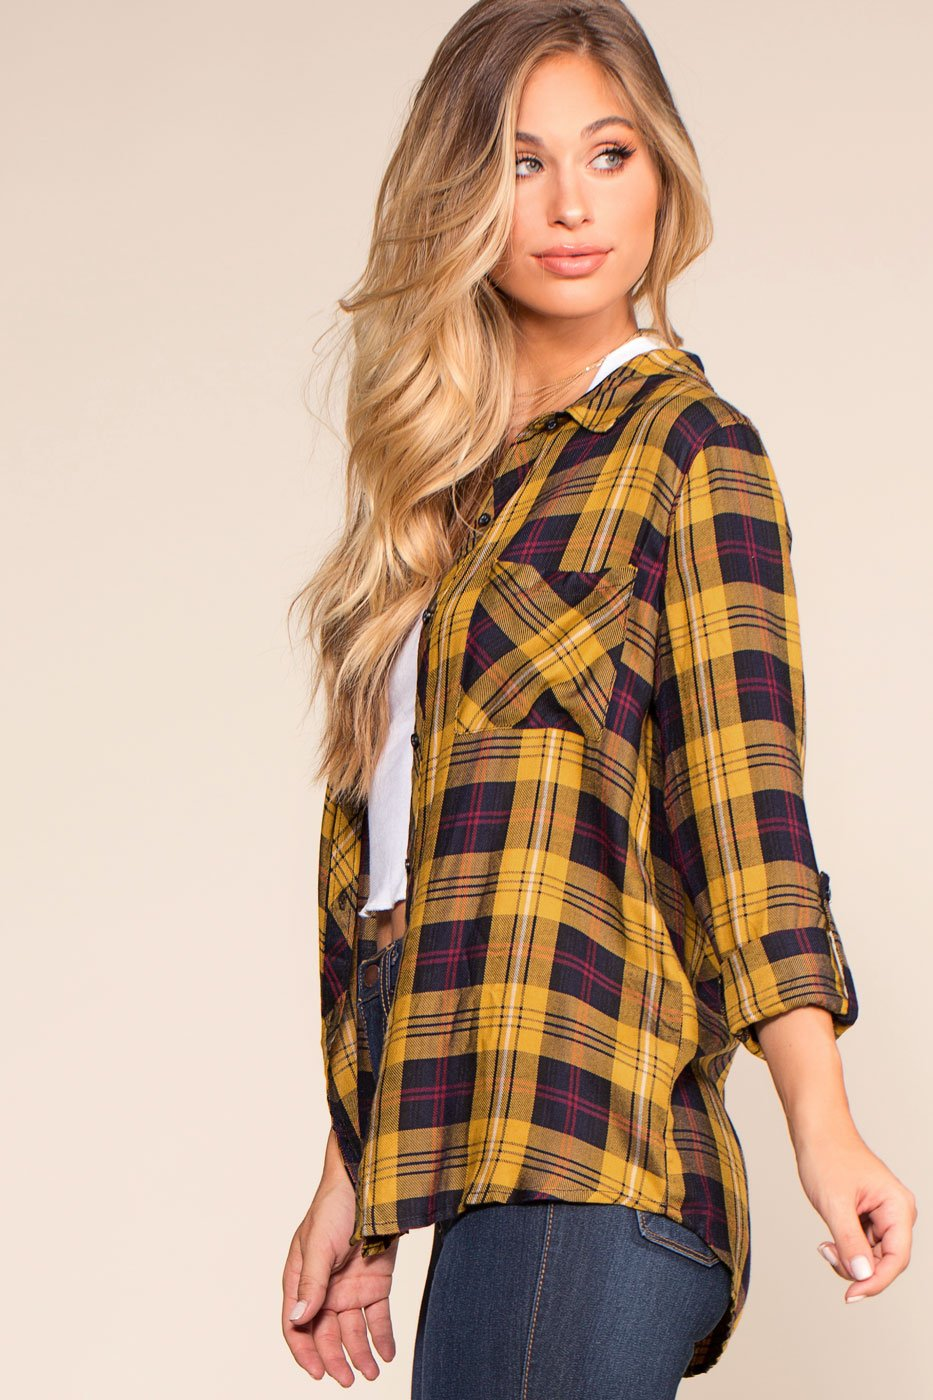 Tops - Madigan Plaid Button Up Shirt - Mustard